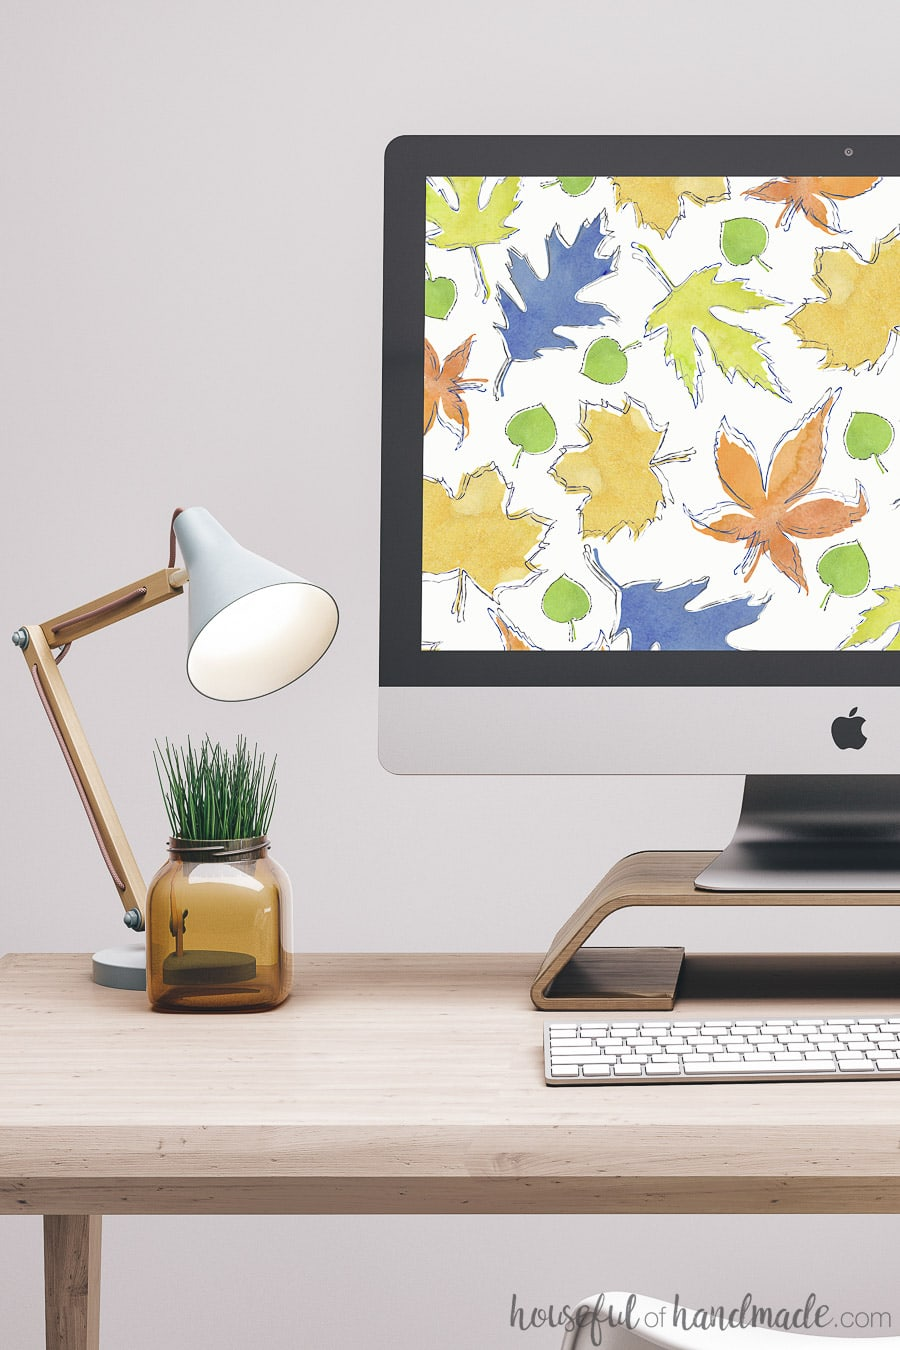 Computer on desk with lamp and plant showing free digital backgrounds on computer. Colorful autumn leaves digital wallpaper.